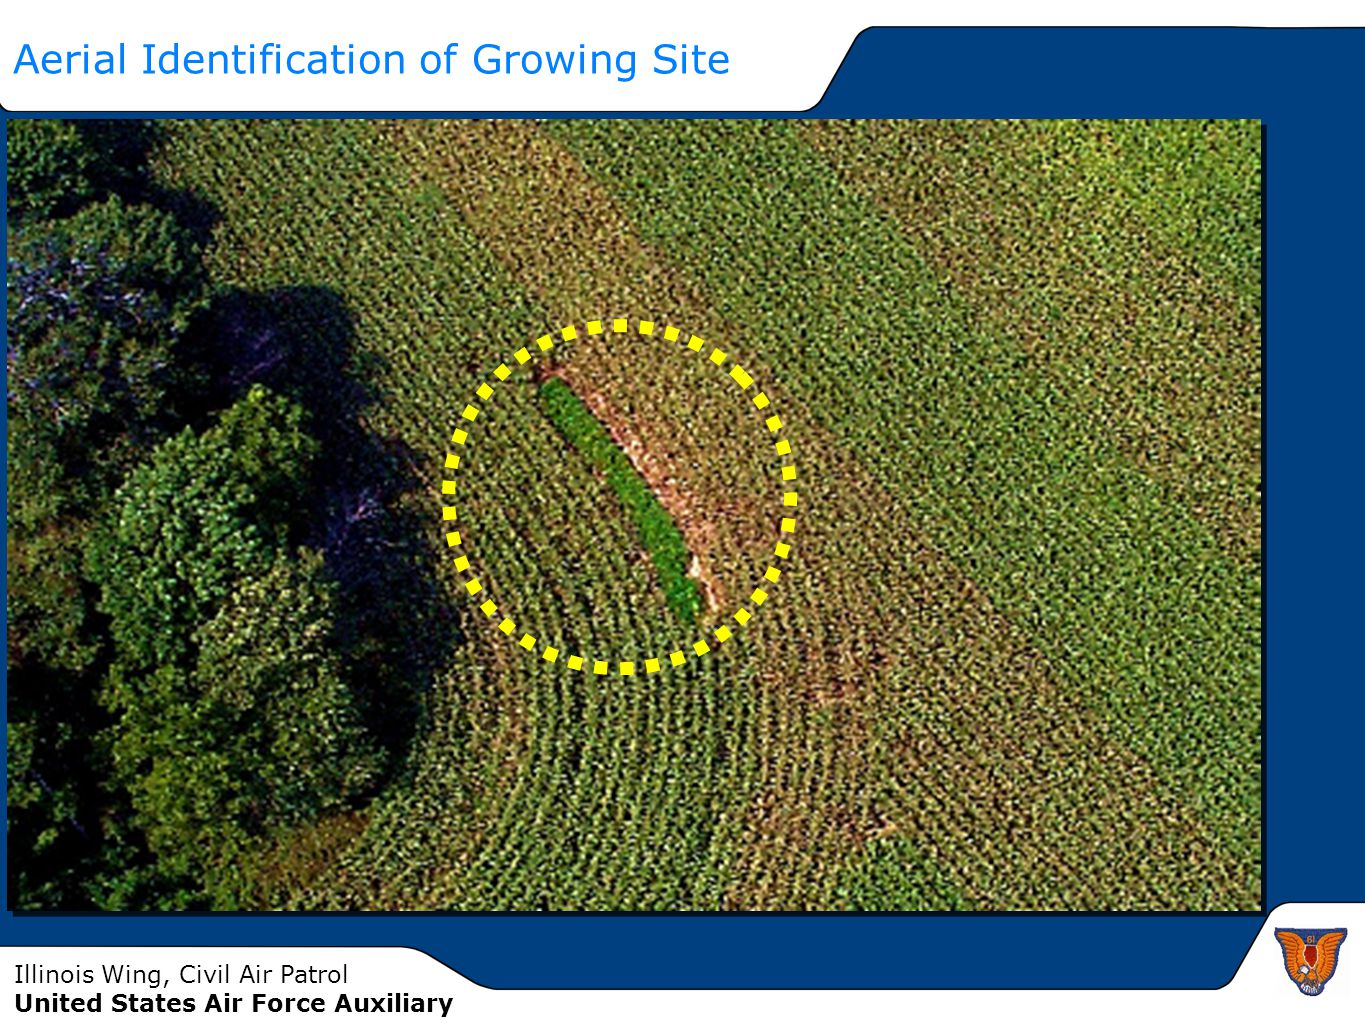 Aerial Identification of Growing Site